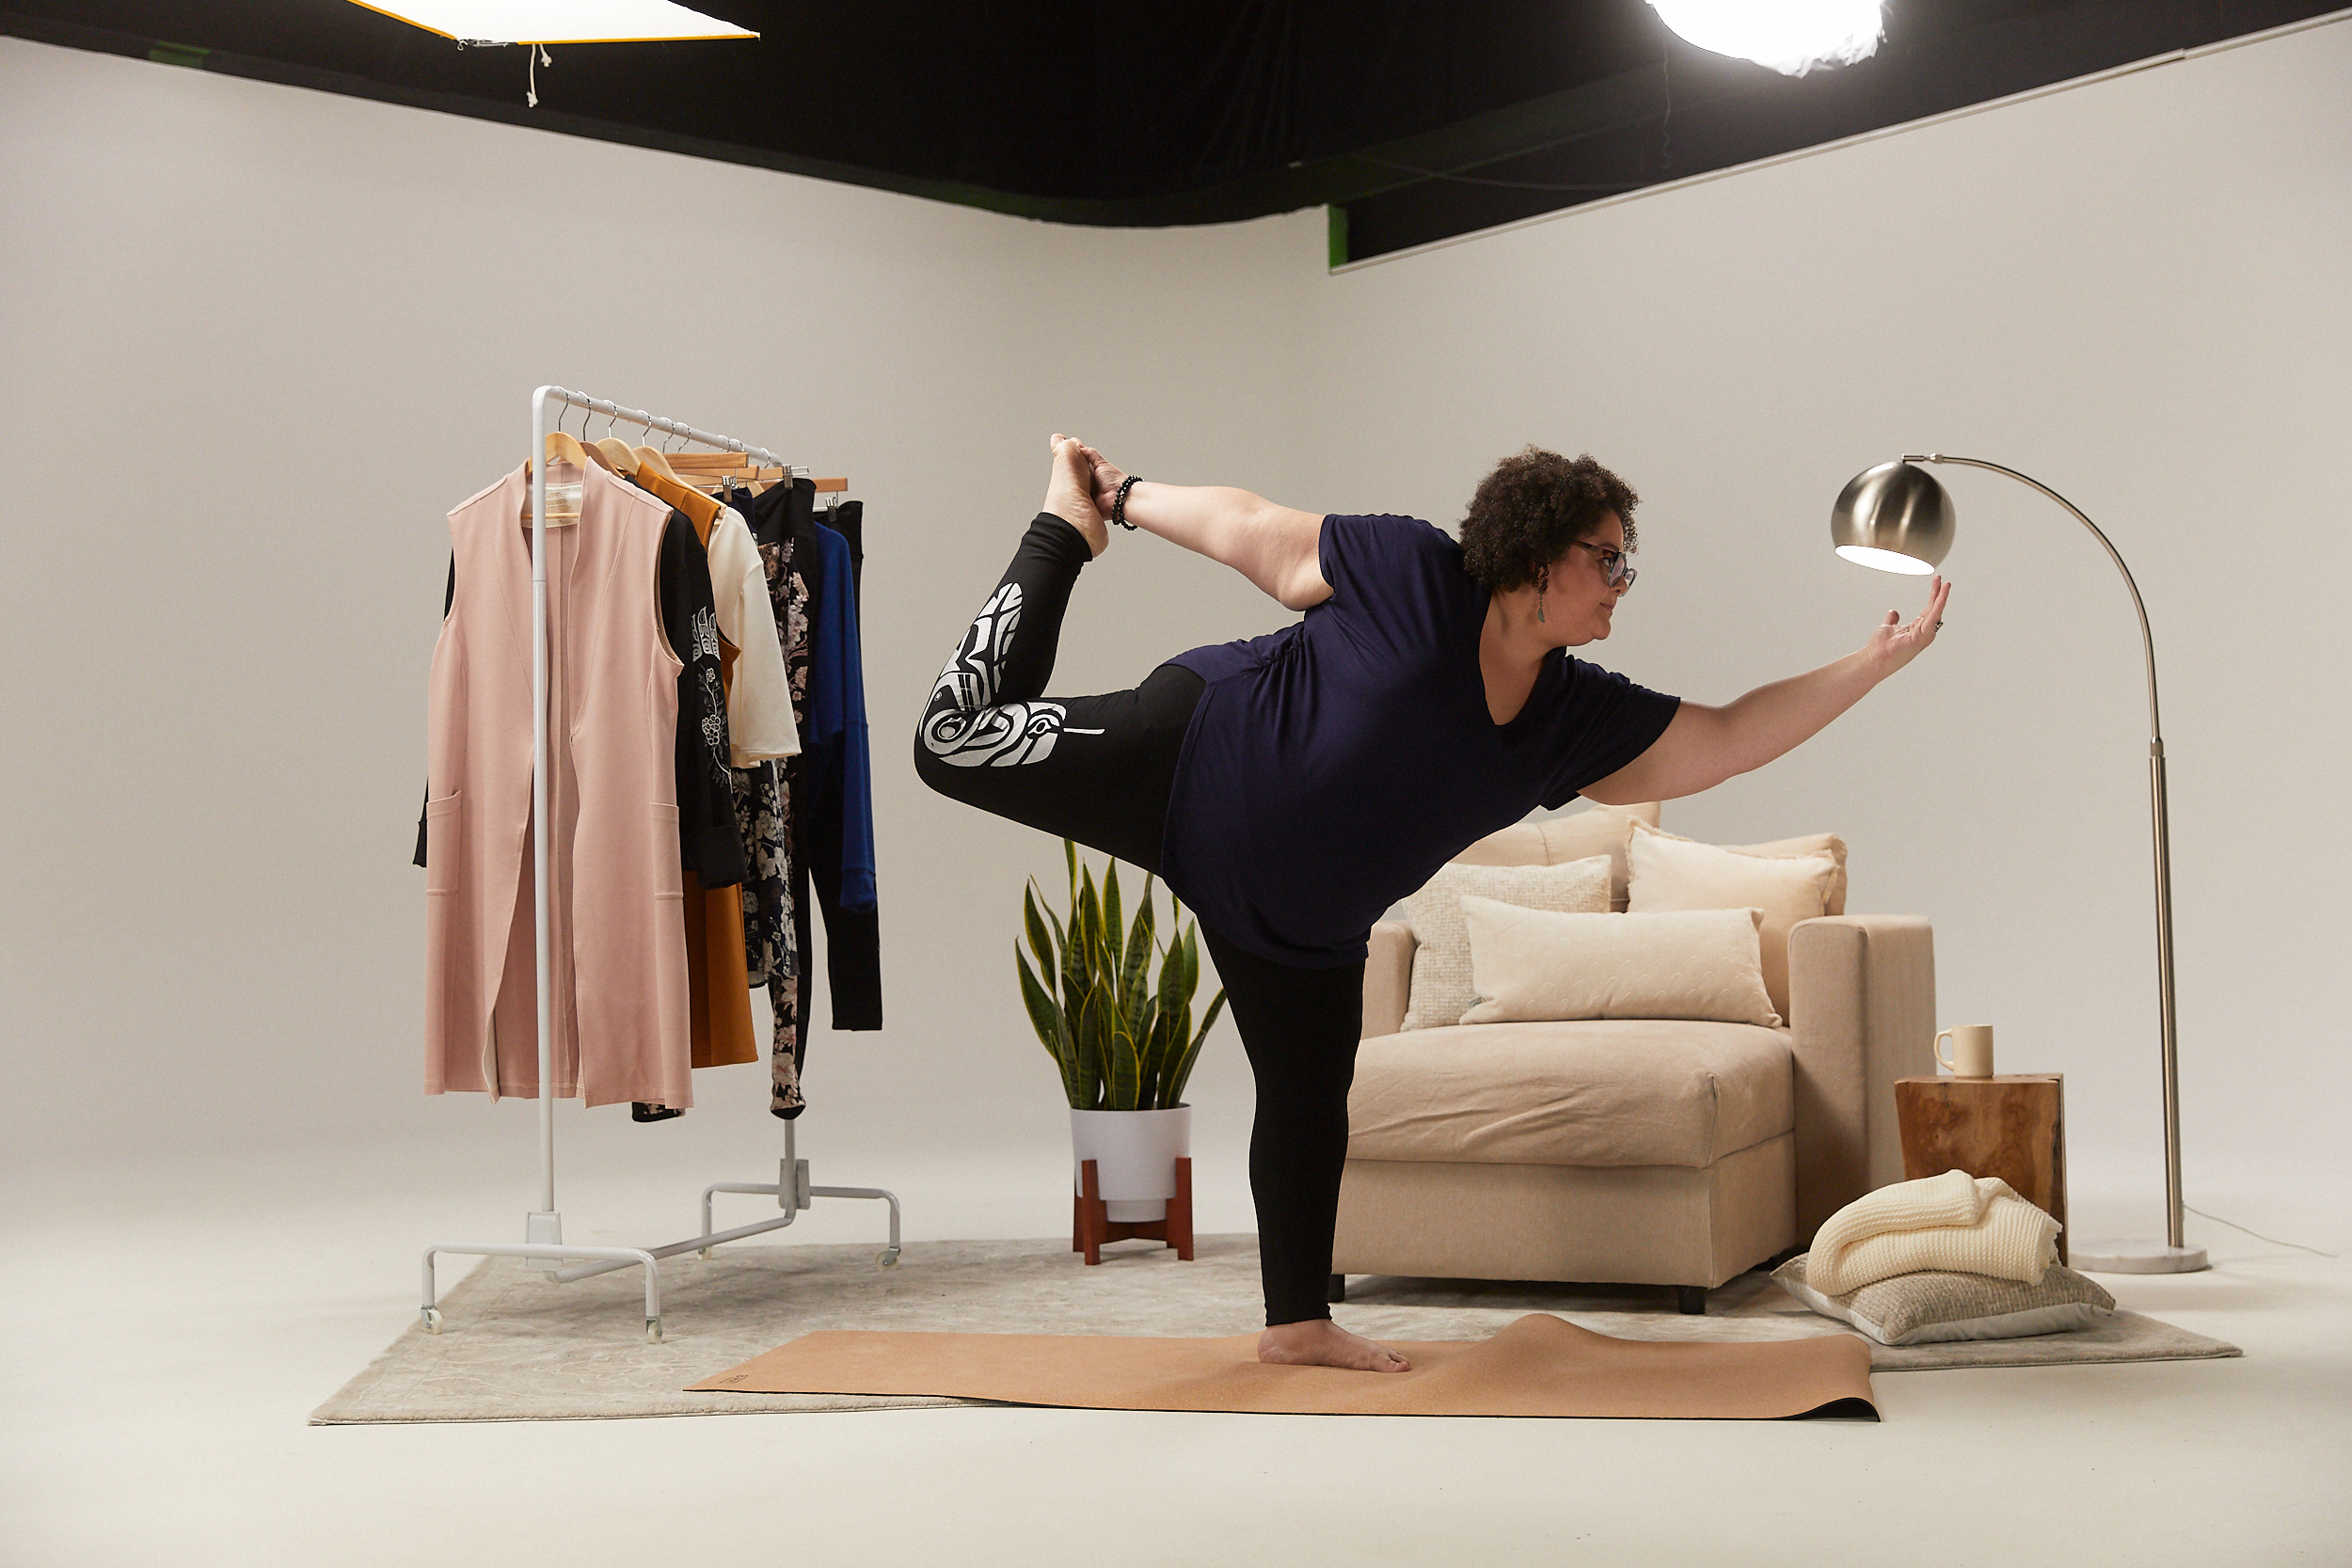 A photo of a person doing yoga for the Anne Mulaire inclusive sizing announcement.